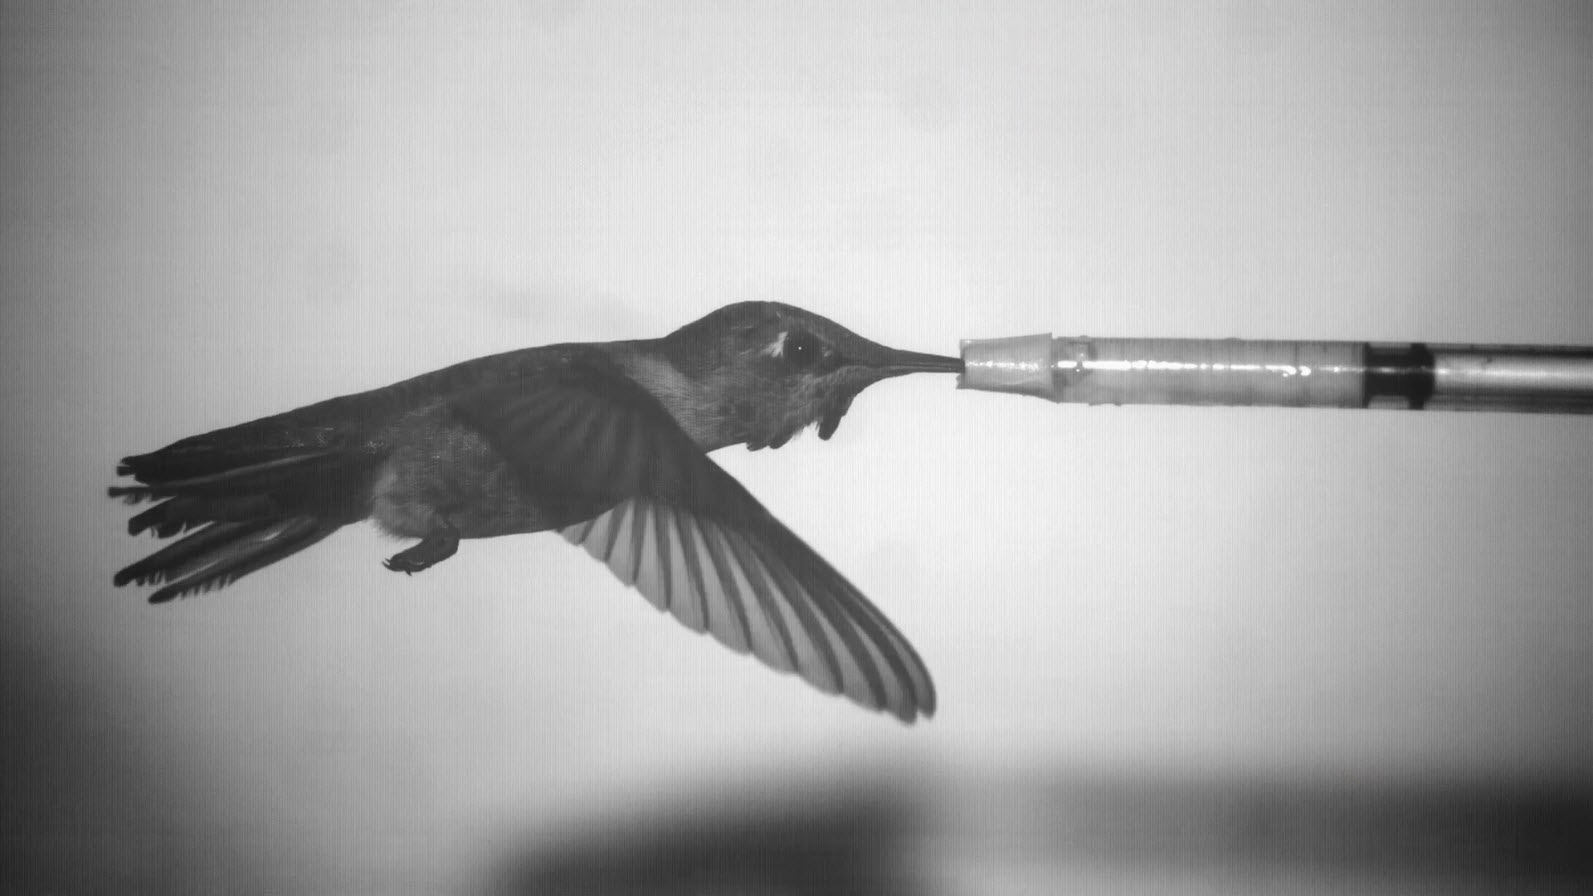 A framegrab from high-speed video of a hummingbird feeding in a wind tunnel at UC Berkeley. Image courtesy of Victor M. Ortega, UC Berkeley.